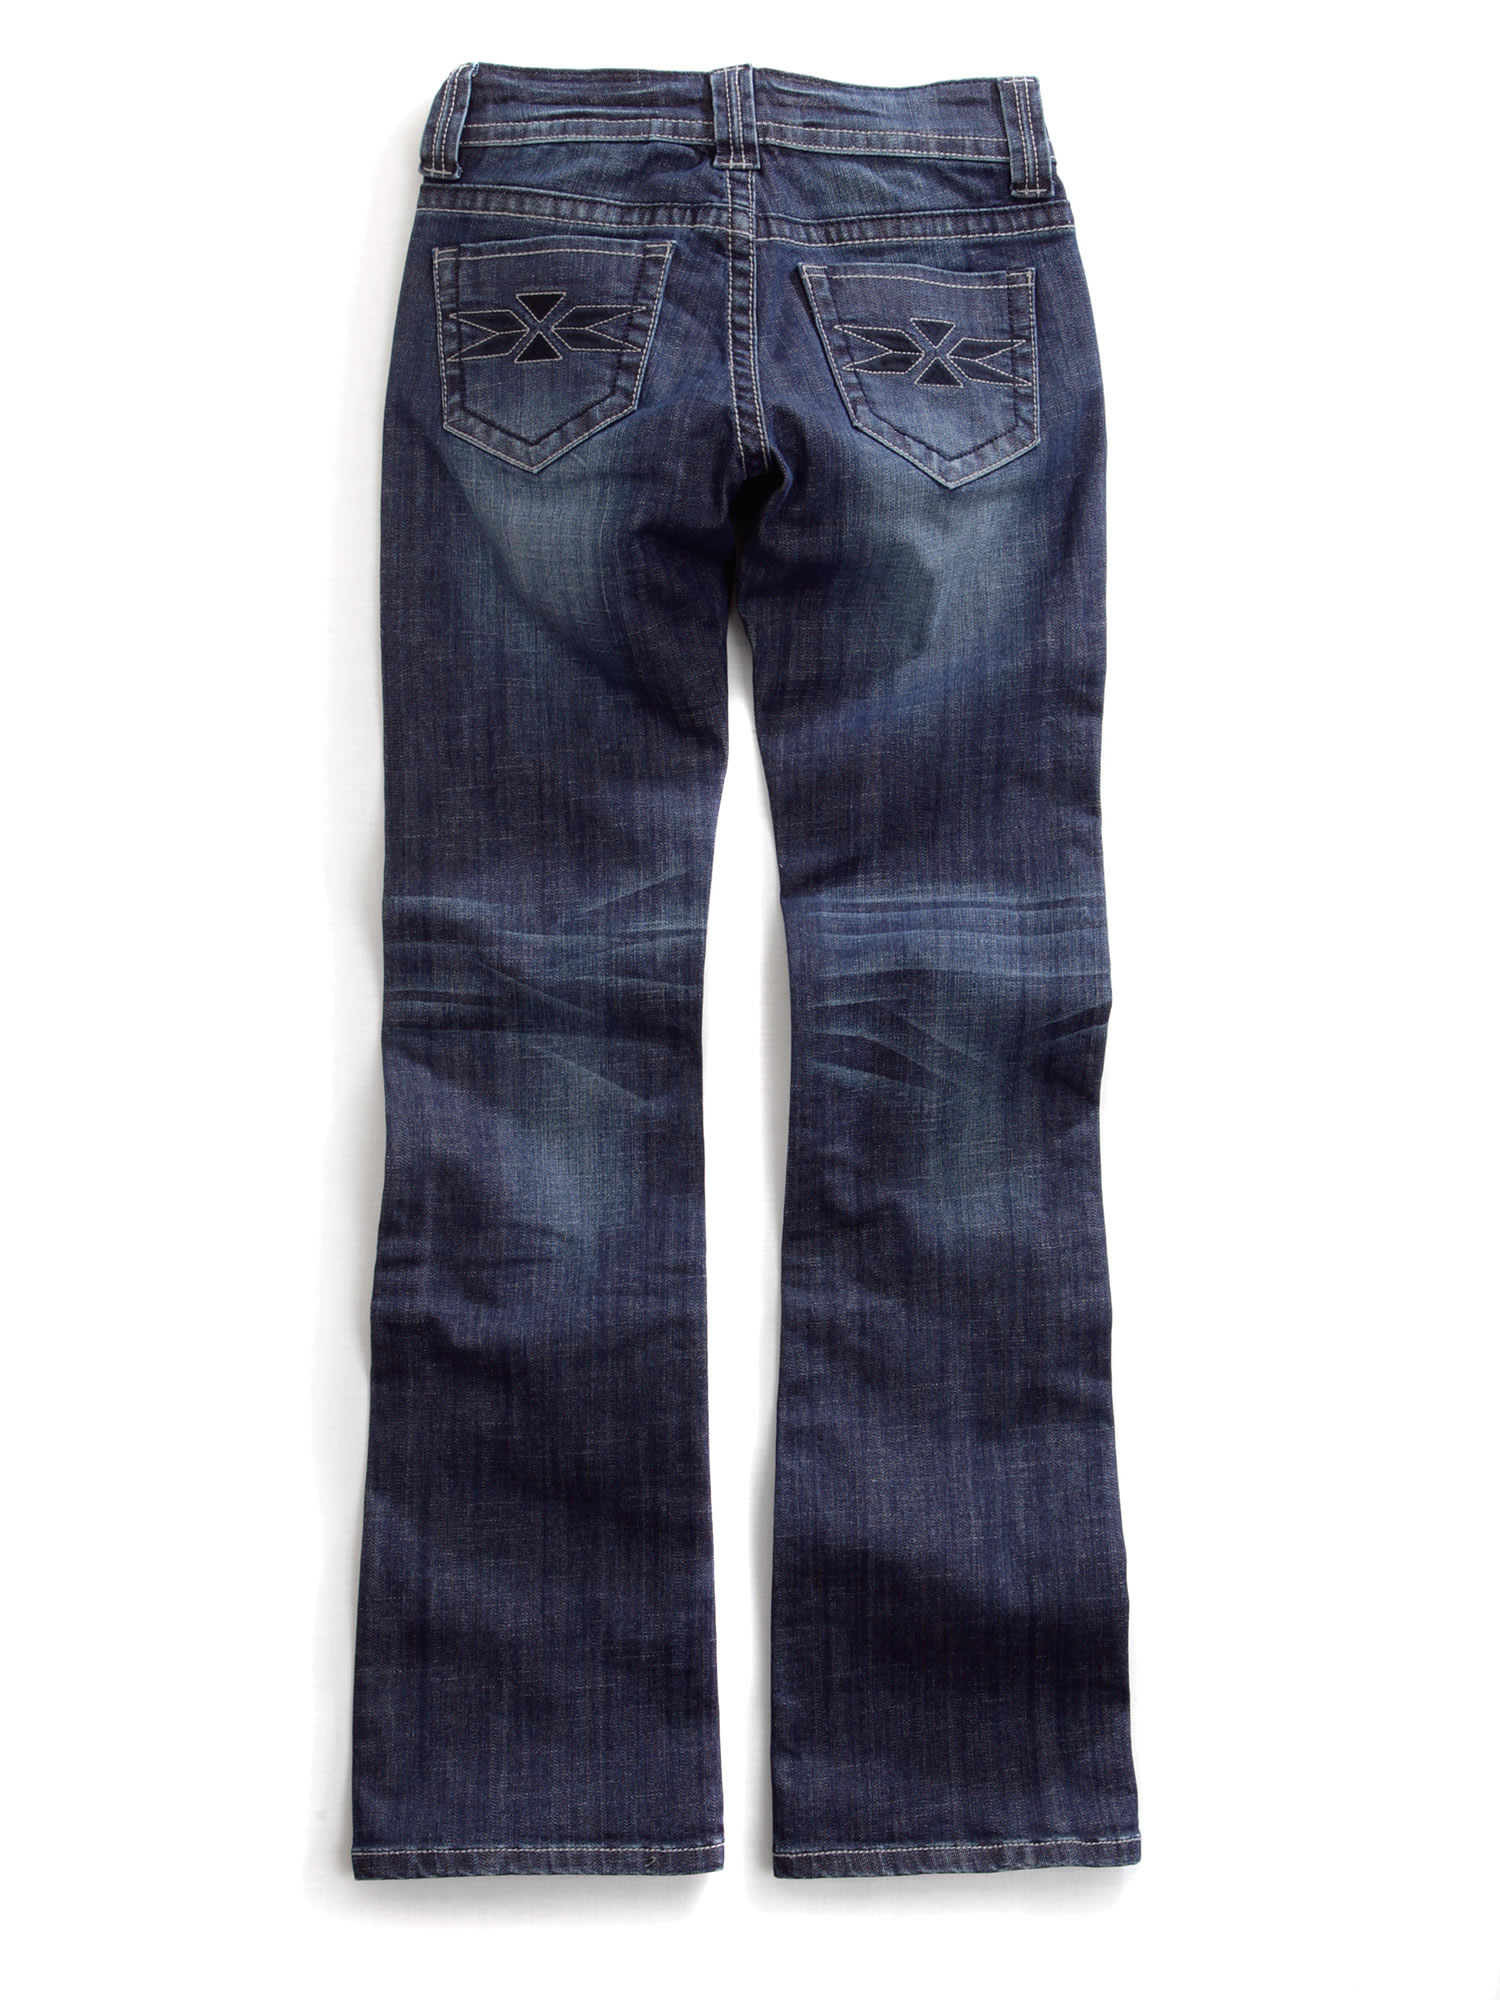 Tin haul dolly celebrity jeans for women